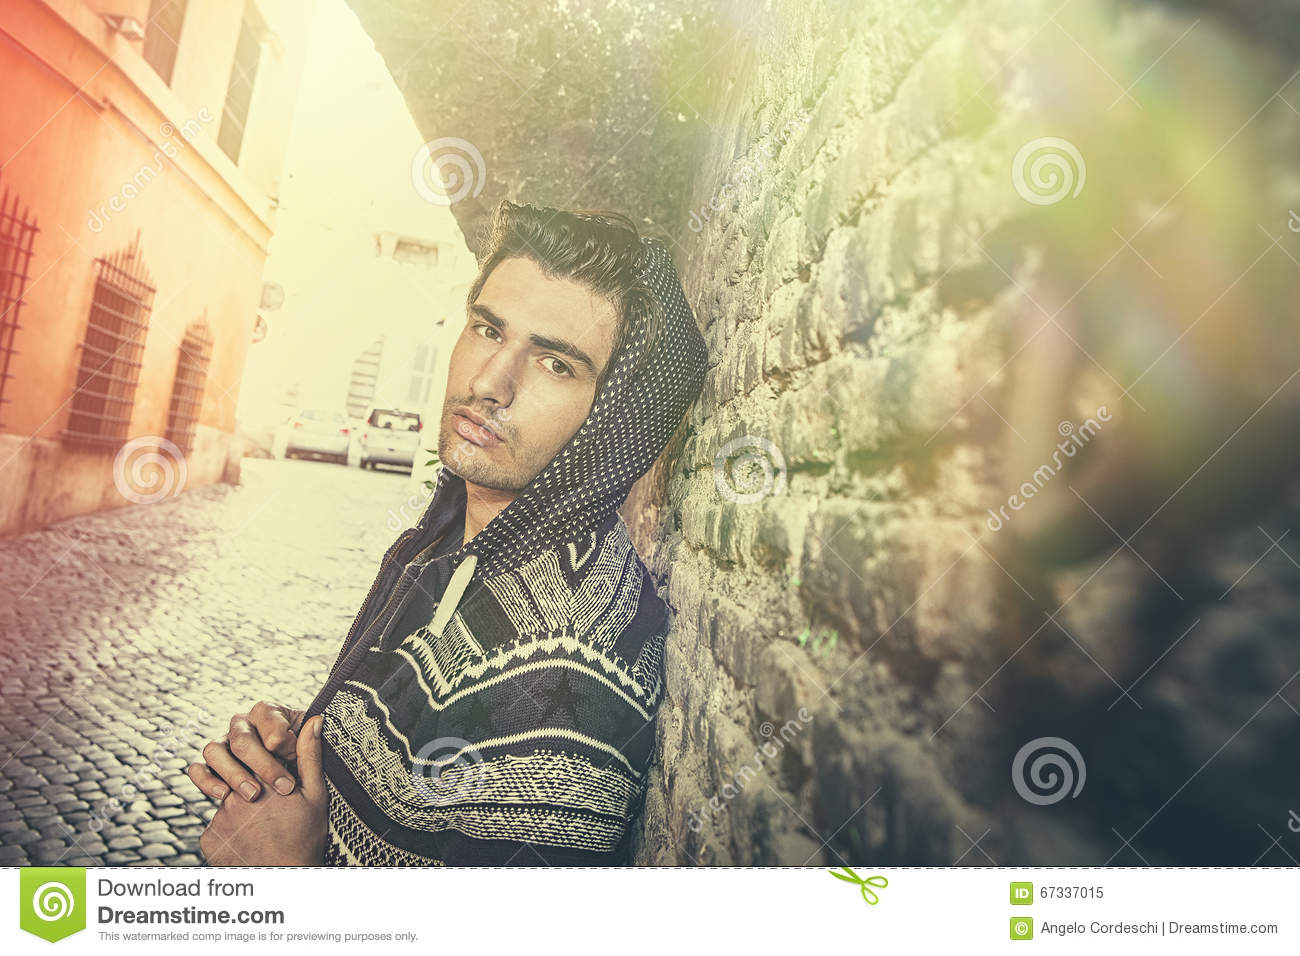 Street city young man model looking, old urban wall